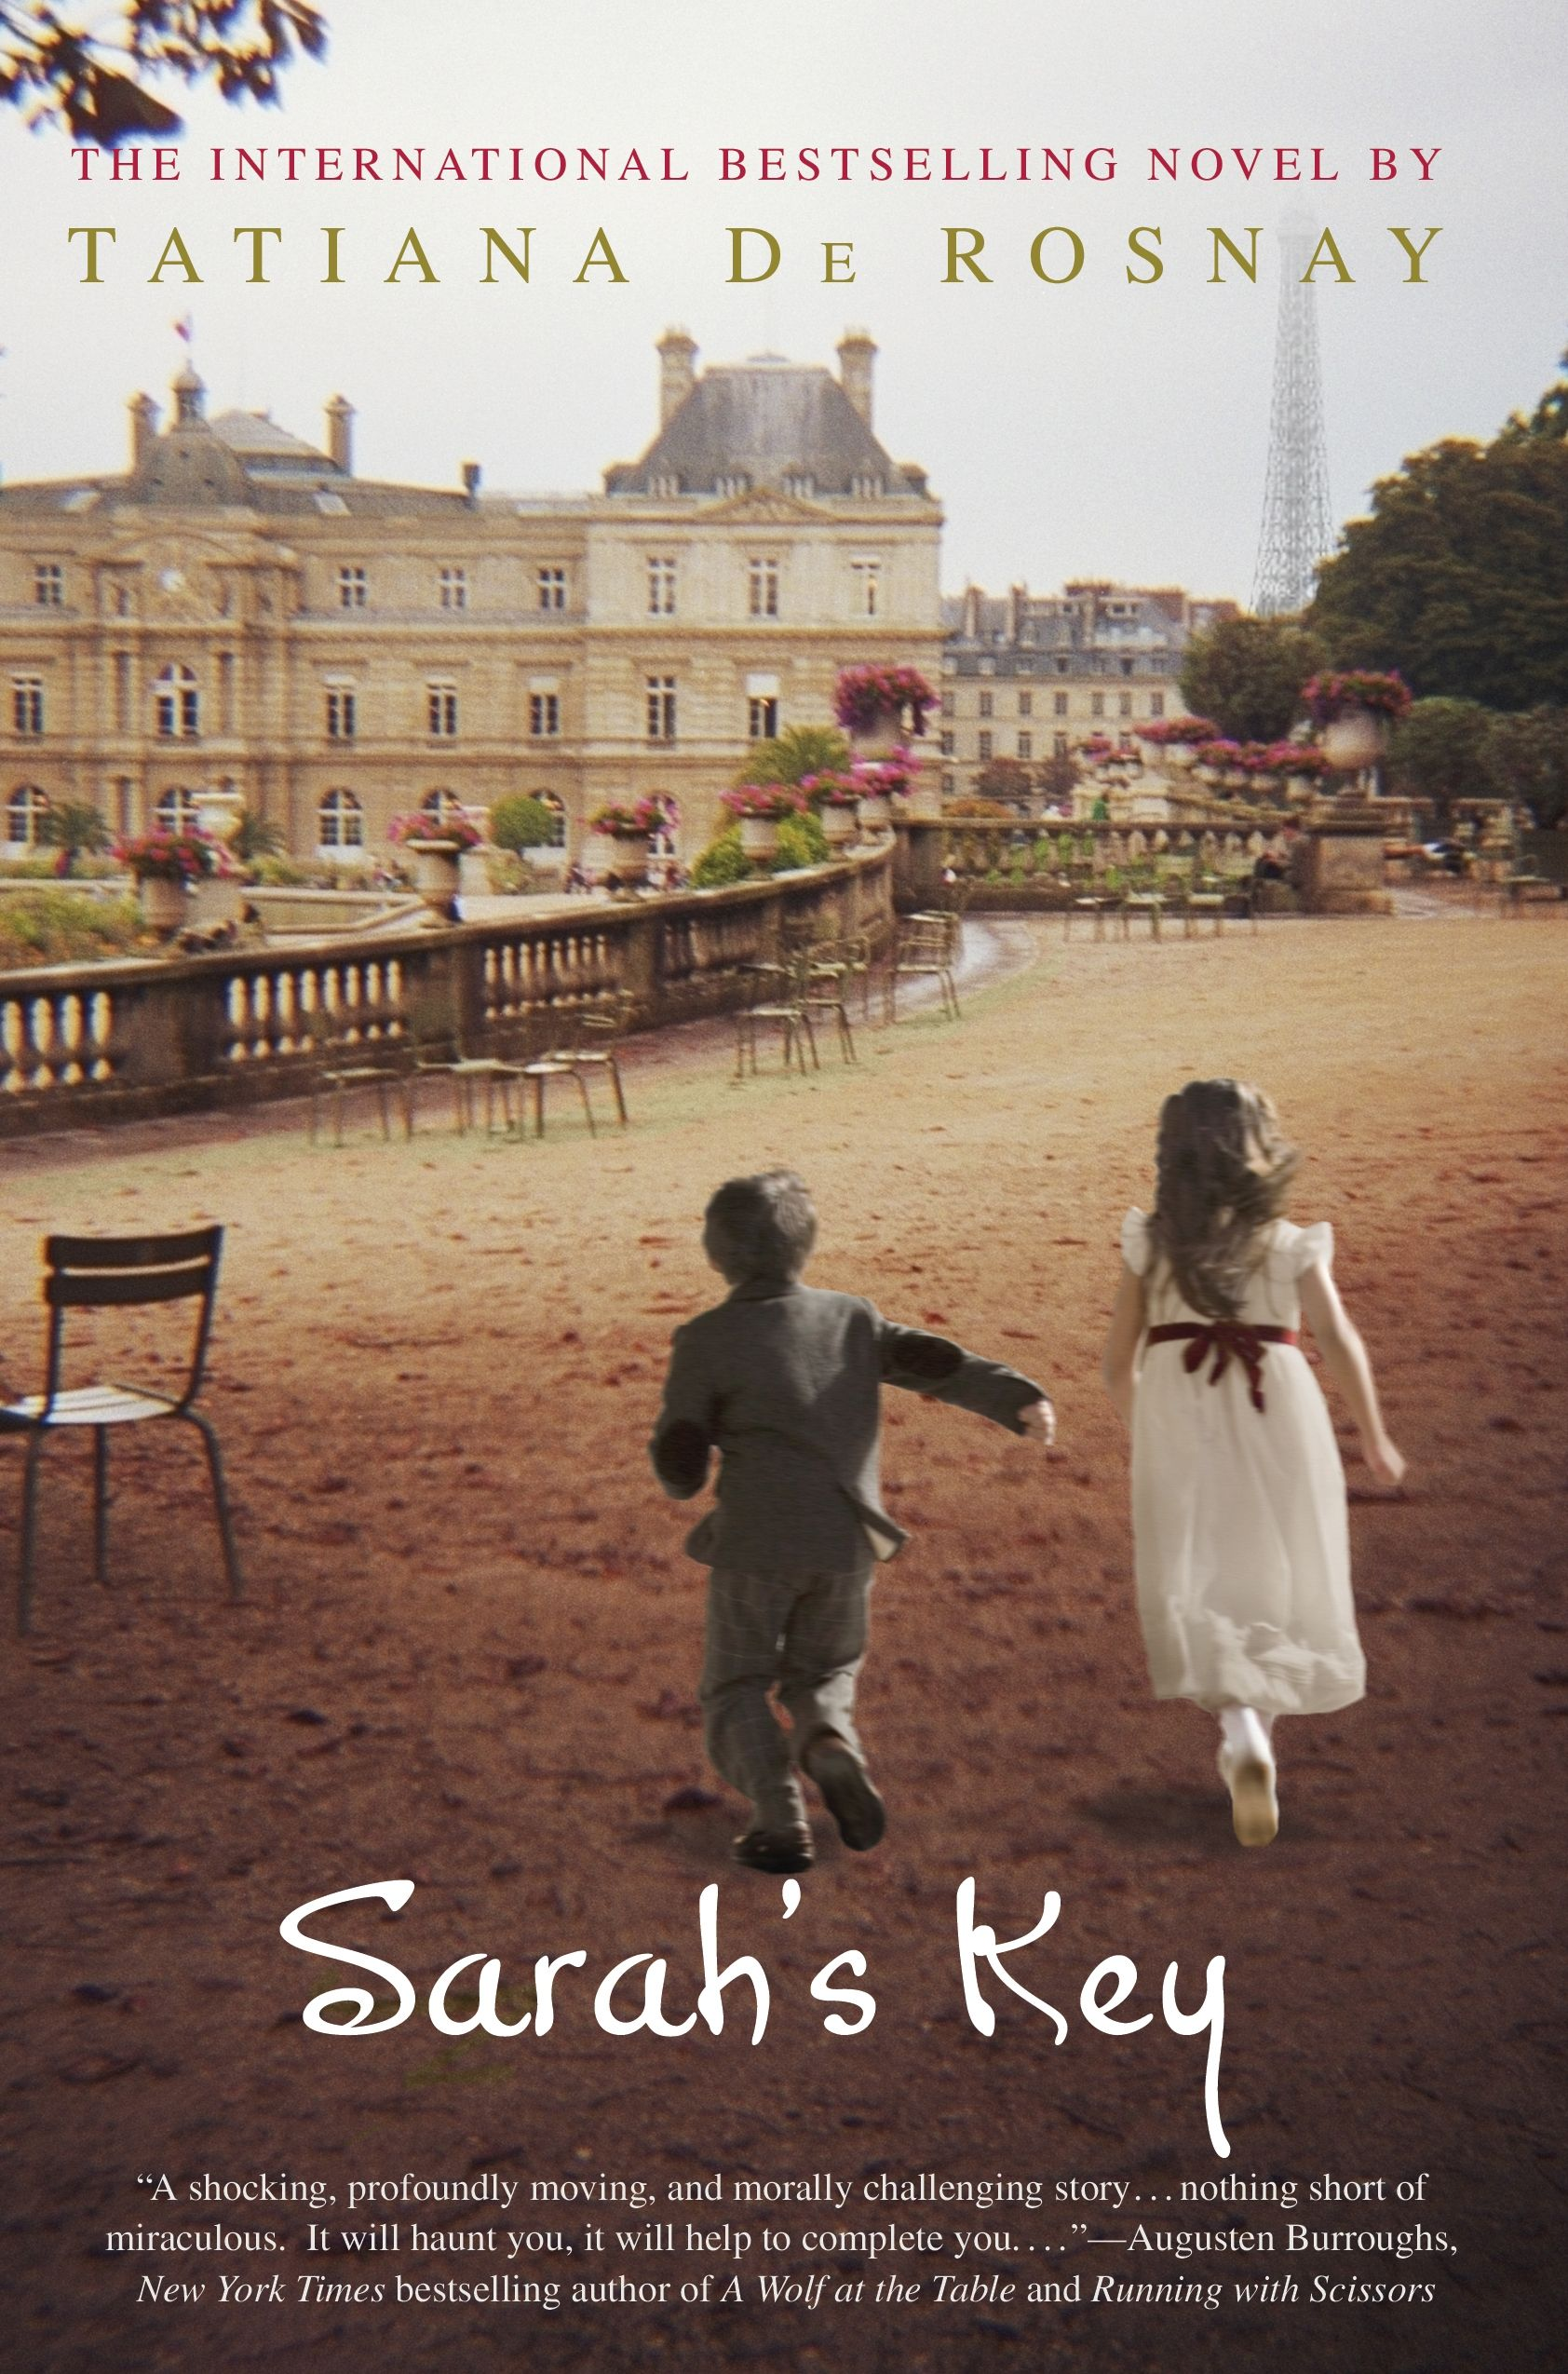 Book Review In Different Key Story Of >> Book Review Of Sarah S Key By Tatiana De Rosnay A Book Set In World